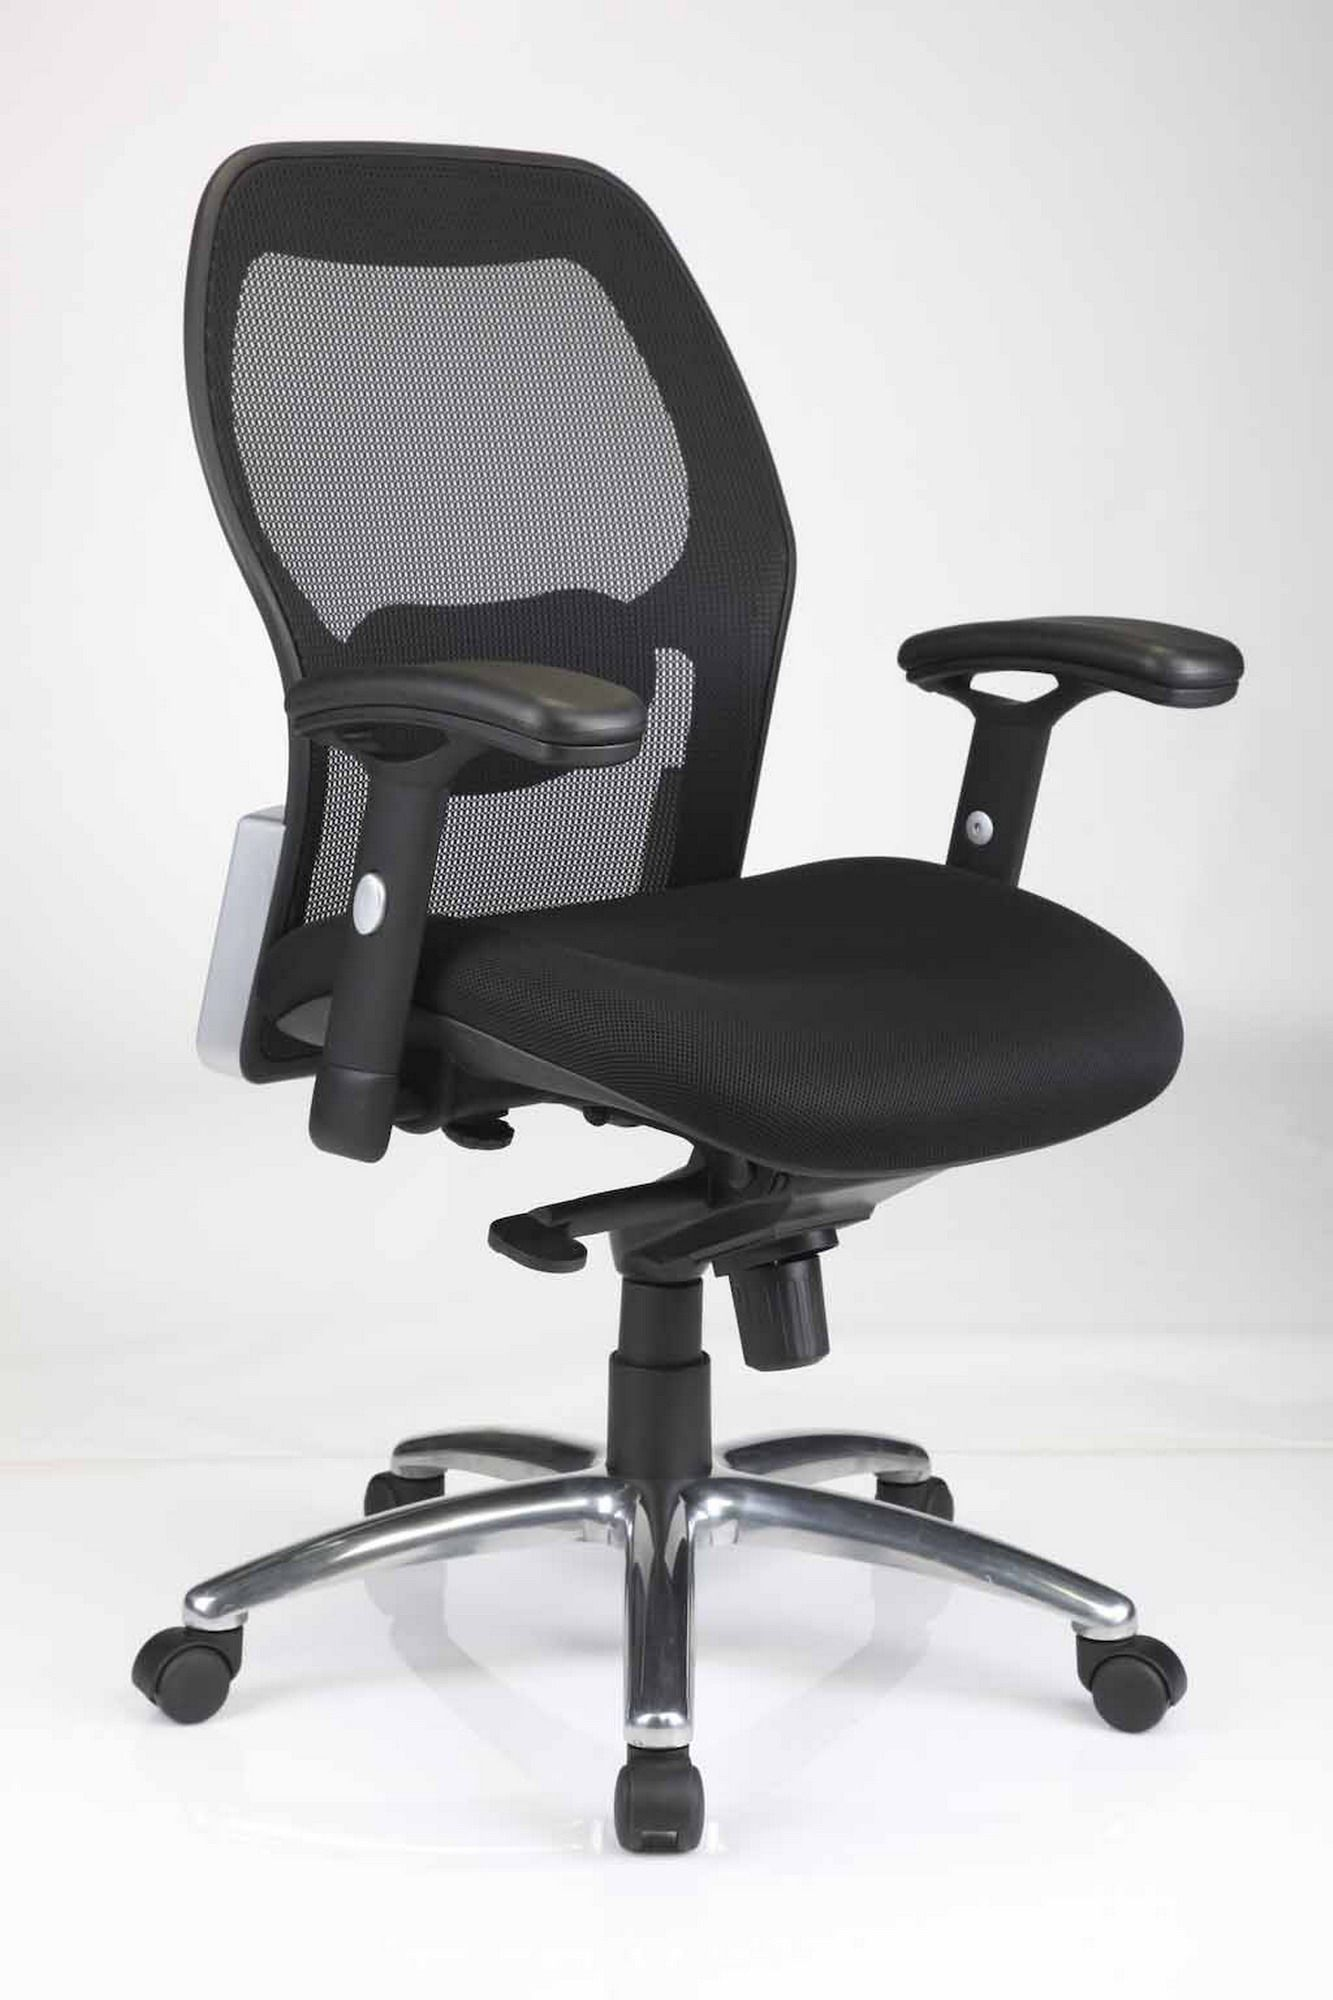 Chennai Chairs is a quality manufacturers of office Chairs